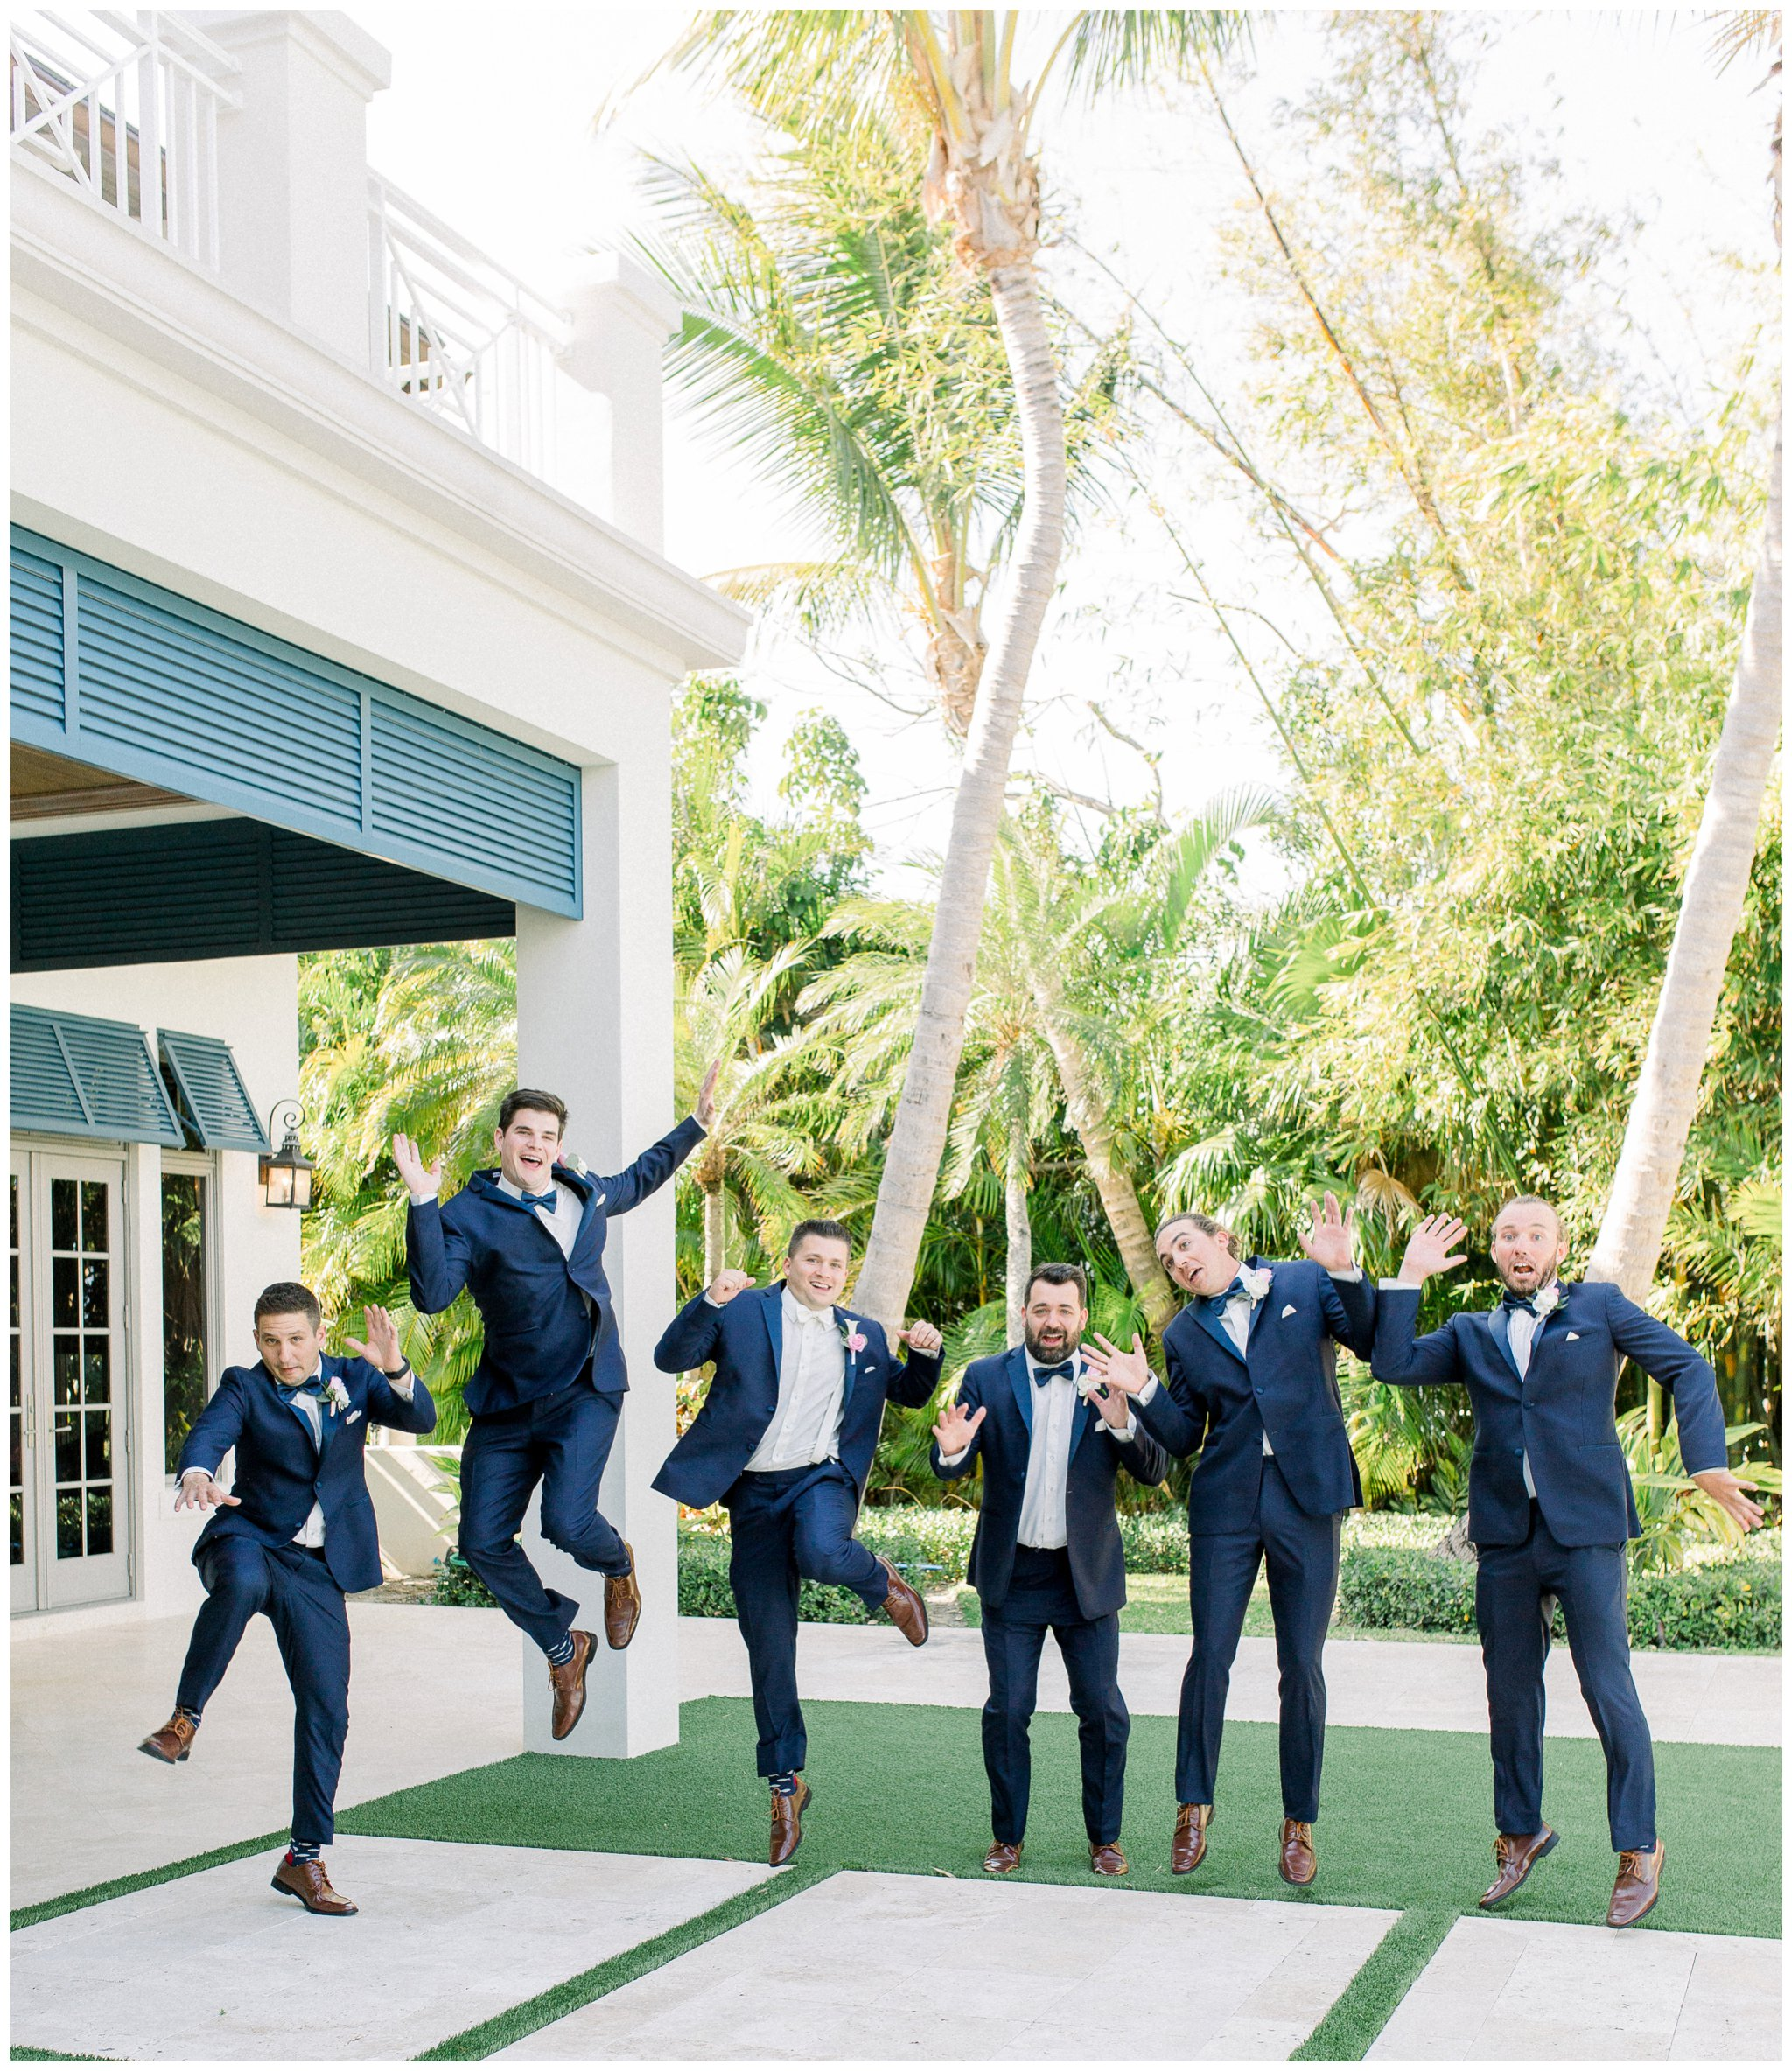 South Florida Wedding Photographer- Palm Beach Wedding Photographer- Jupiter Wedding Photographer- Florida Photographer- Willoughby Country Club Wedding- Sturat Florida Wedding- St Bernadette Port St Lucie Wedding_0021.jpg